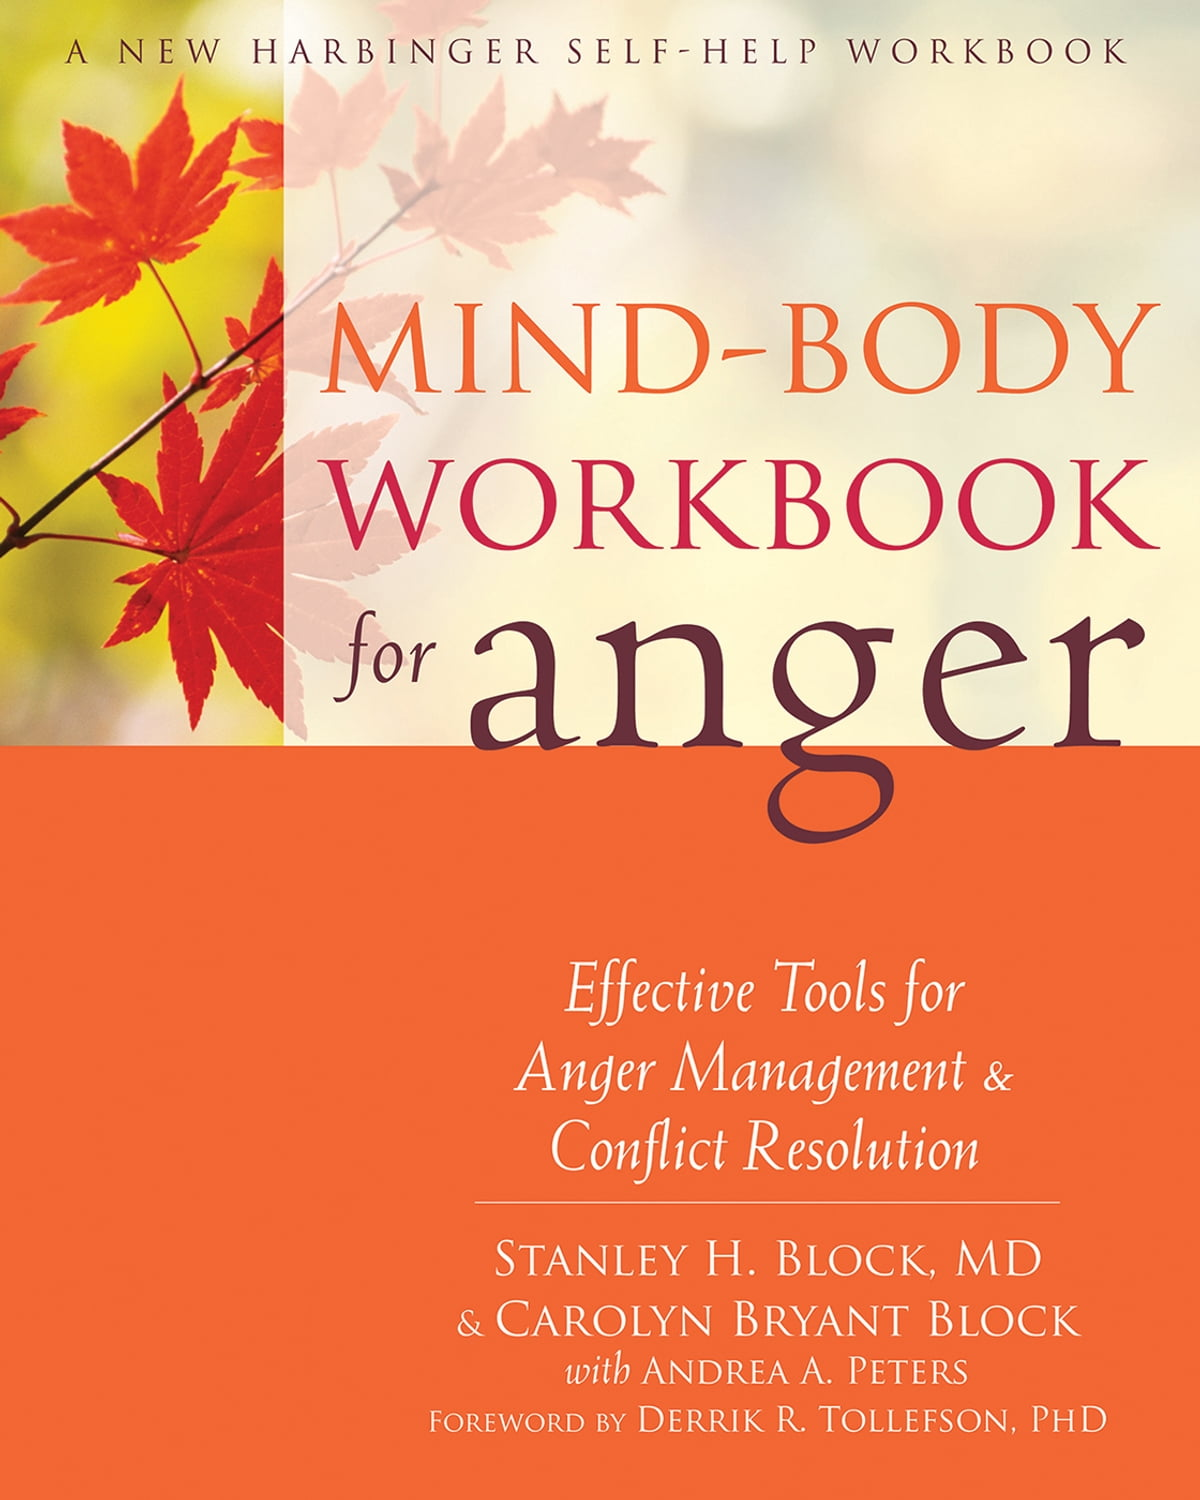 Mind-Body Workbook for Anger eBook by Stanley H. Block, MD ...